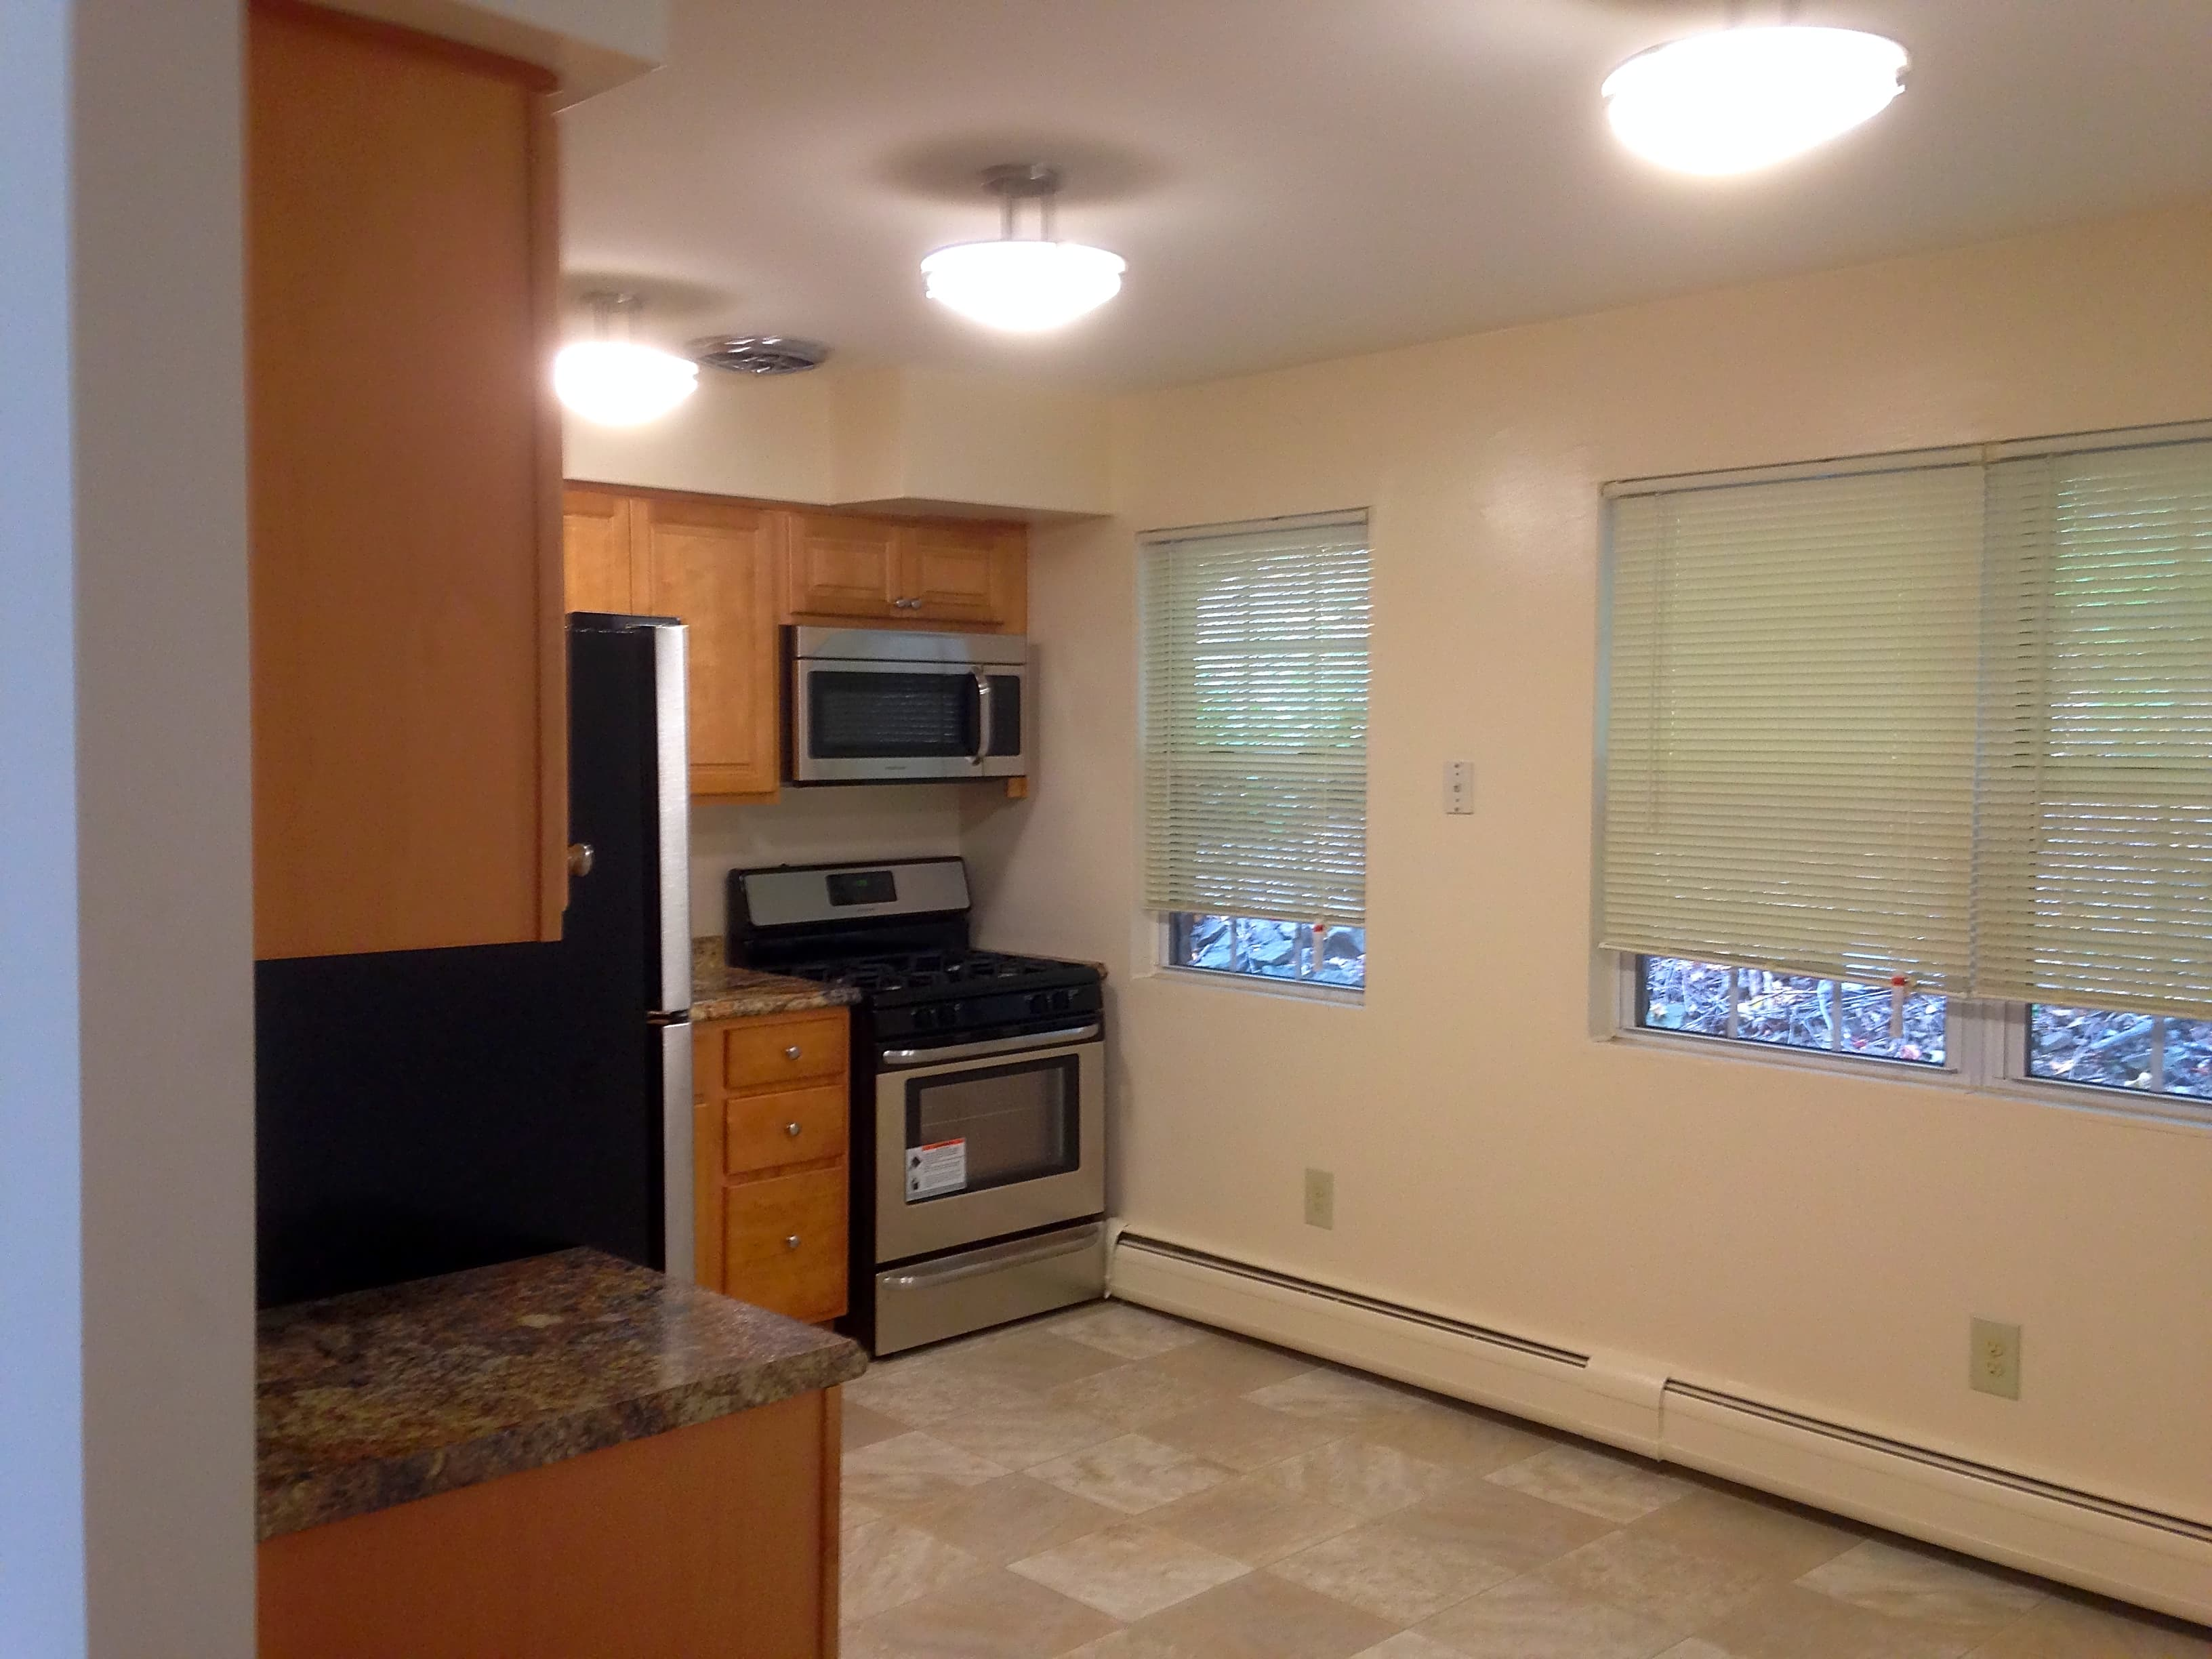 Apartments Near Ramapo Pompton Hills for Ramapo College of New Jersey Students in Mahwah, NJ